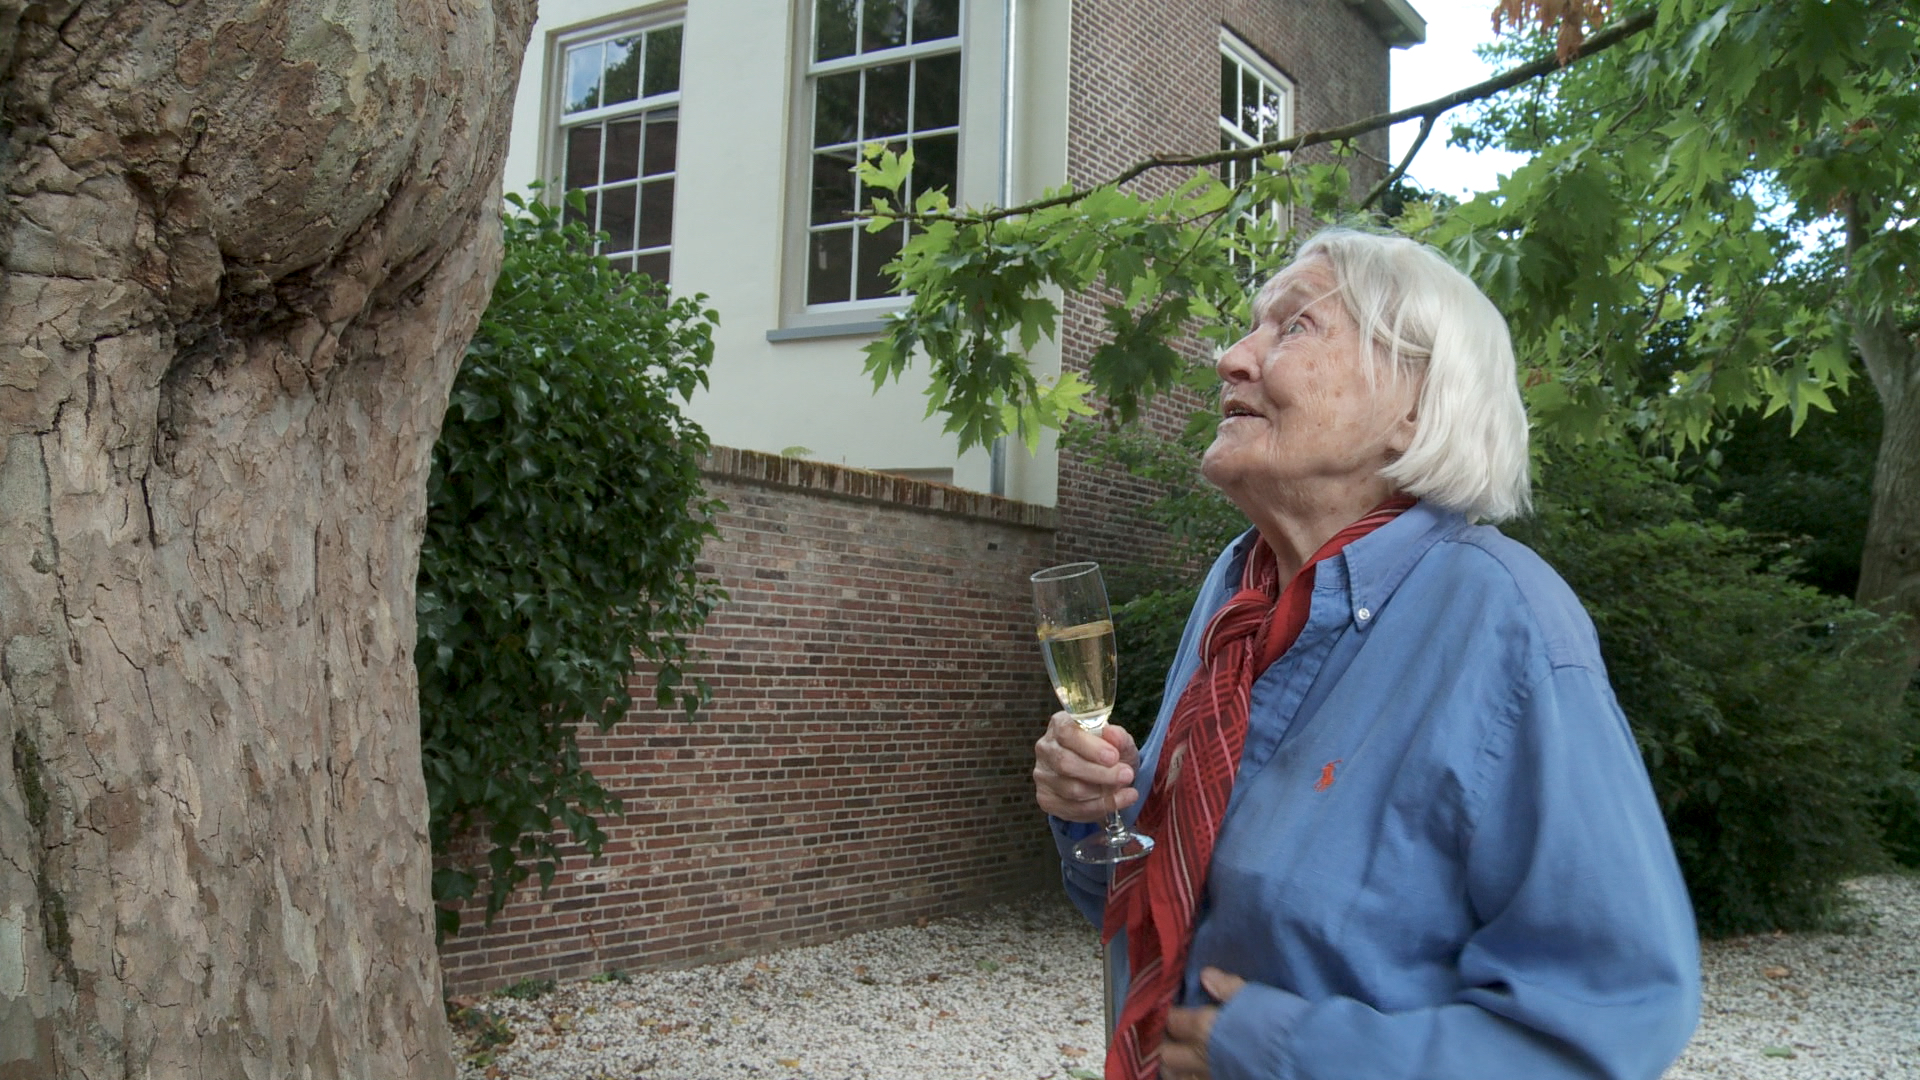 Still from the film Een klein beetje nog. Elisabeth is standing at an old tree with a glass of champagne in hand. She looks happy.